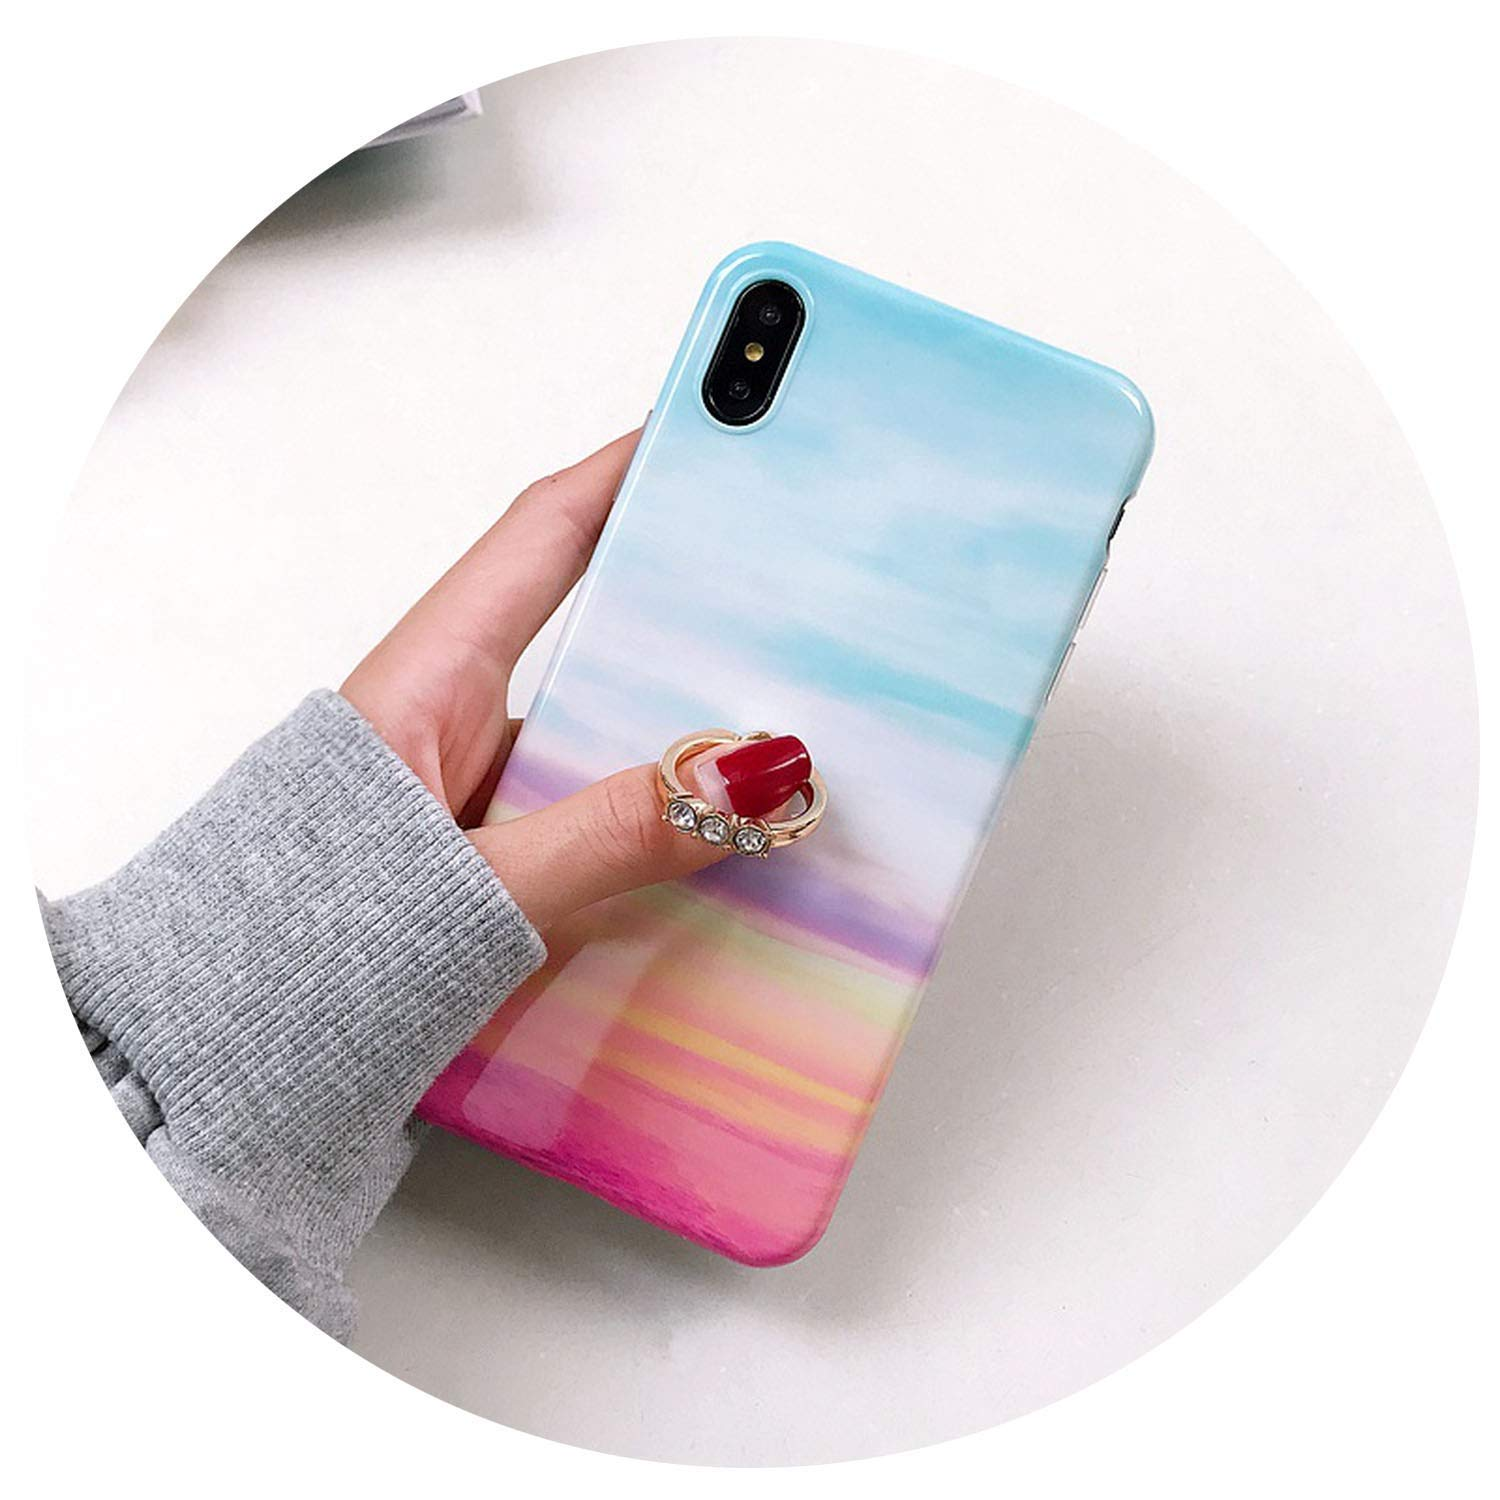 Amazon.com: Funda de silicona de color mármol para iPhone Xs ...